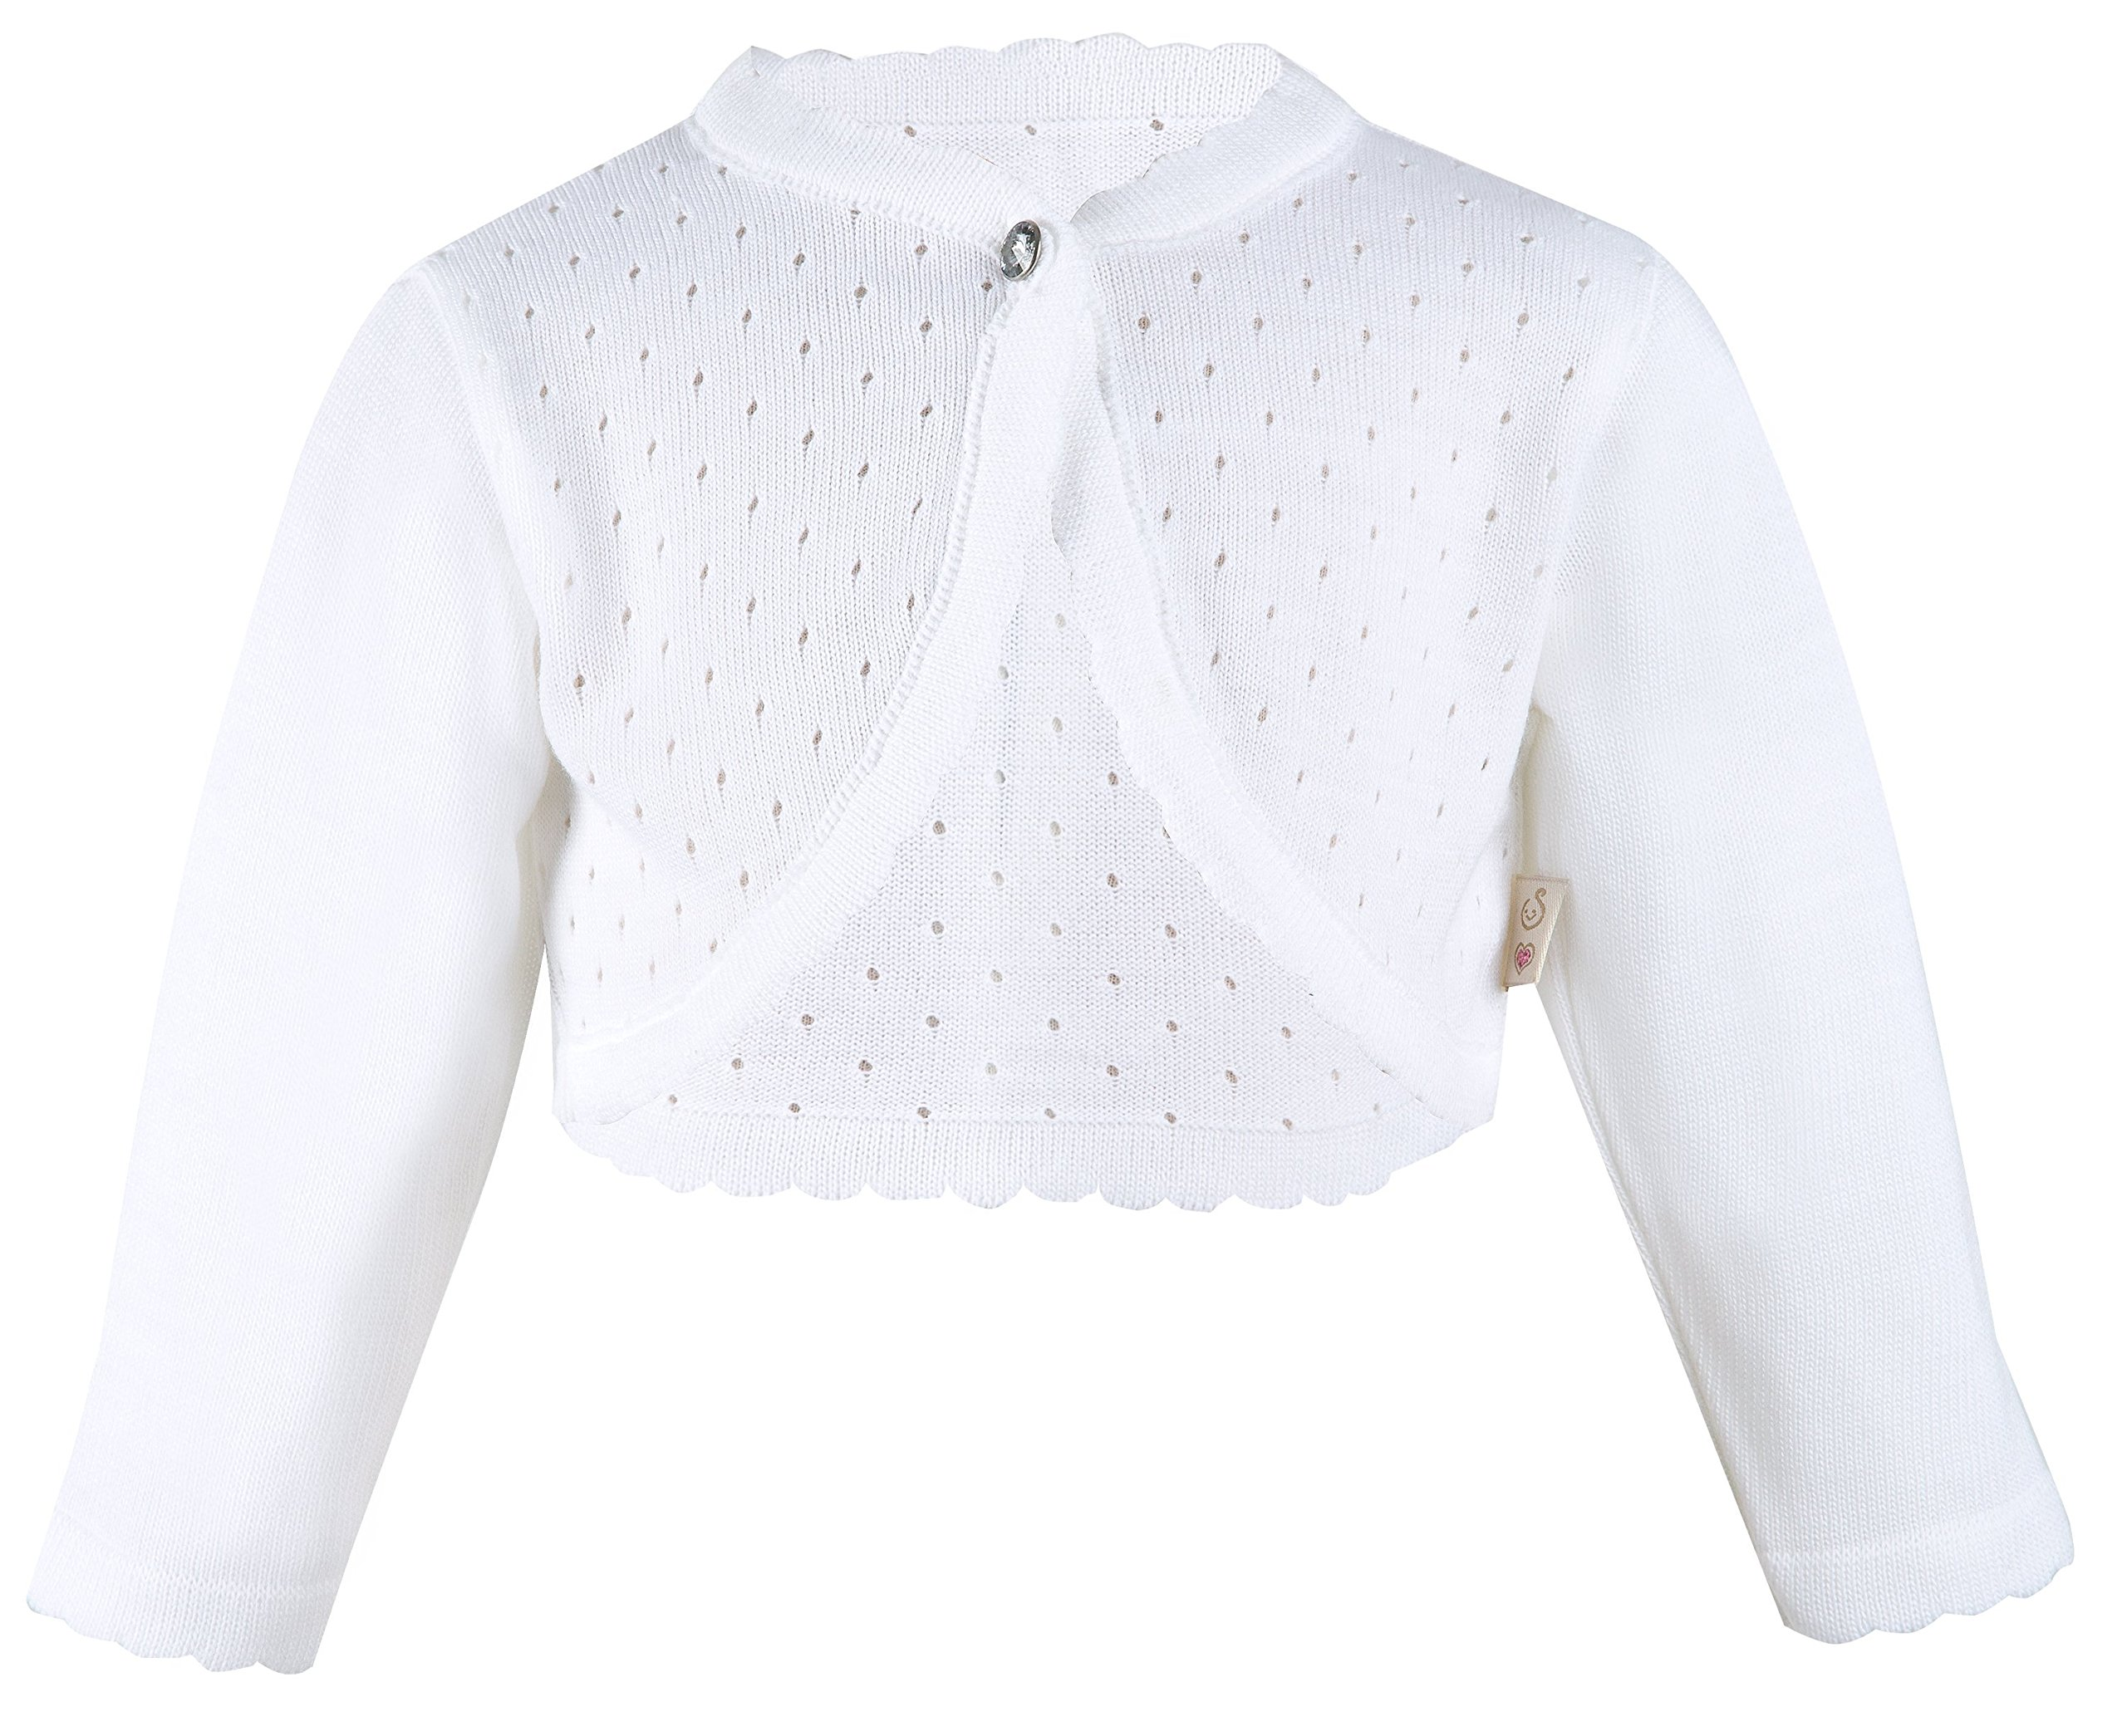 e60dfdcb7 Best Rated in Girls  Sweaters   Helpful Customer Reviews - Amazon.com